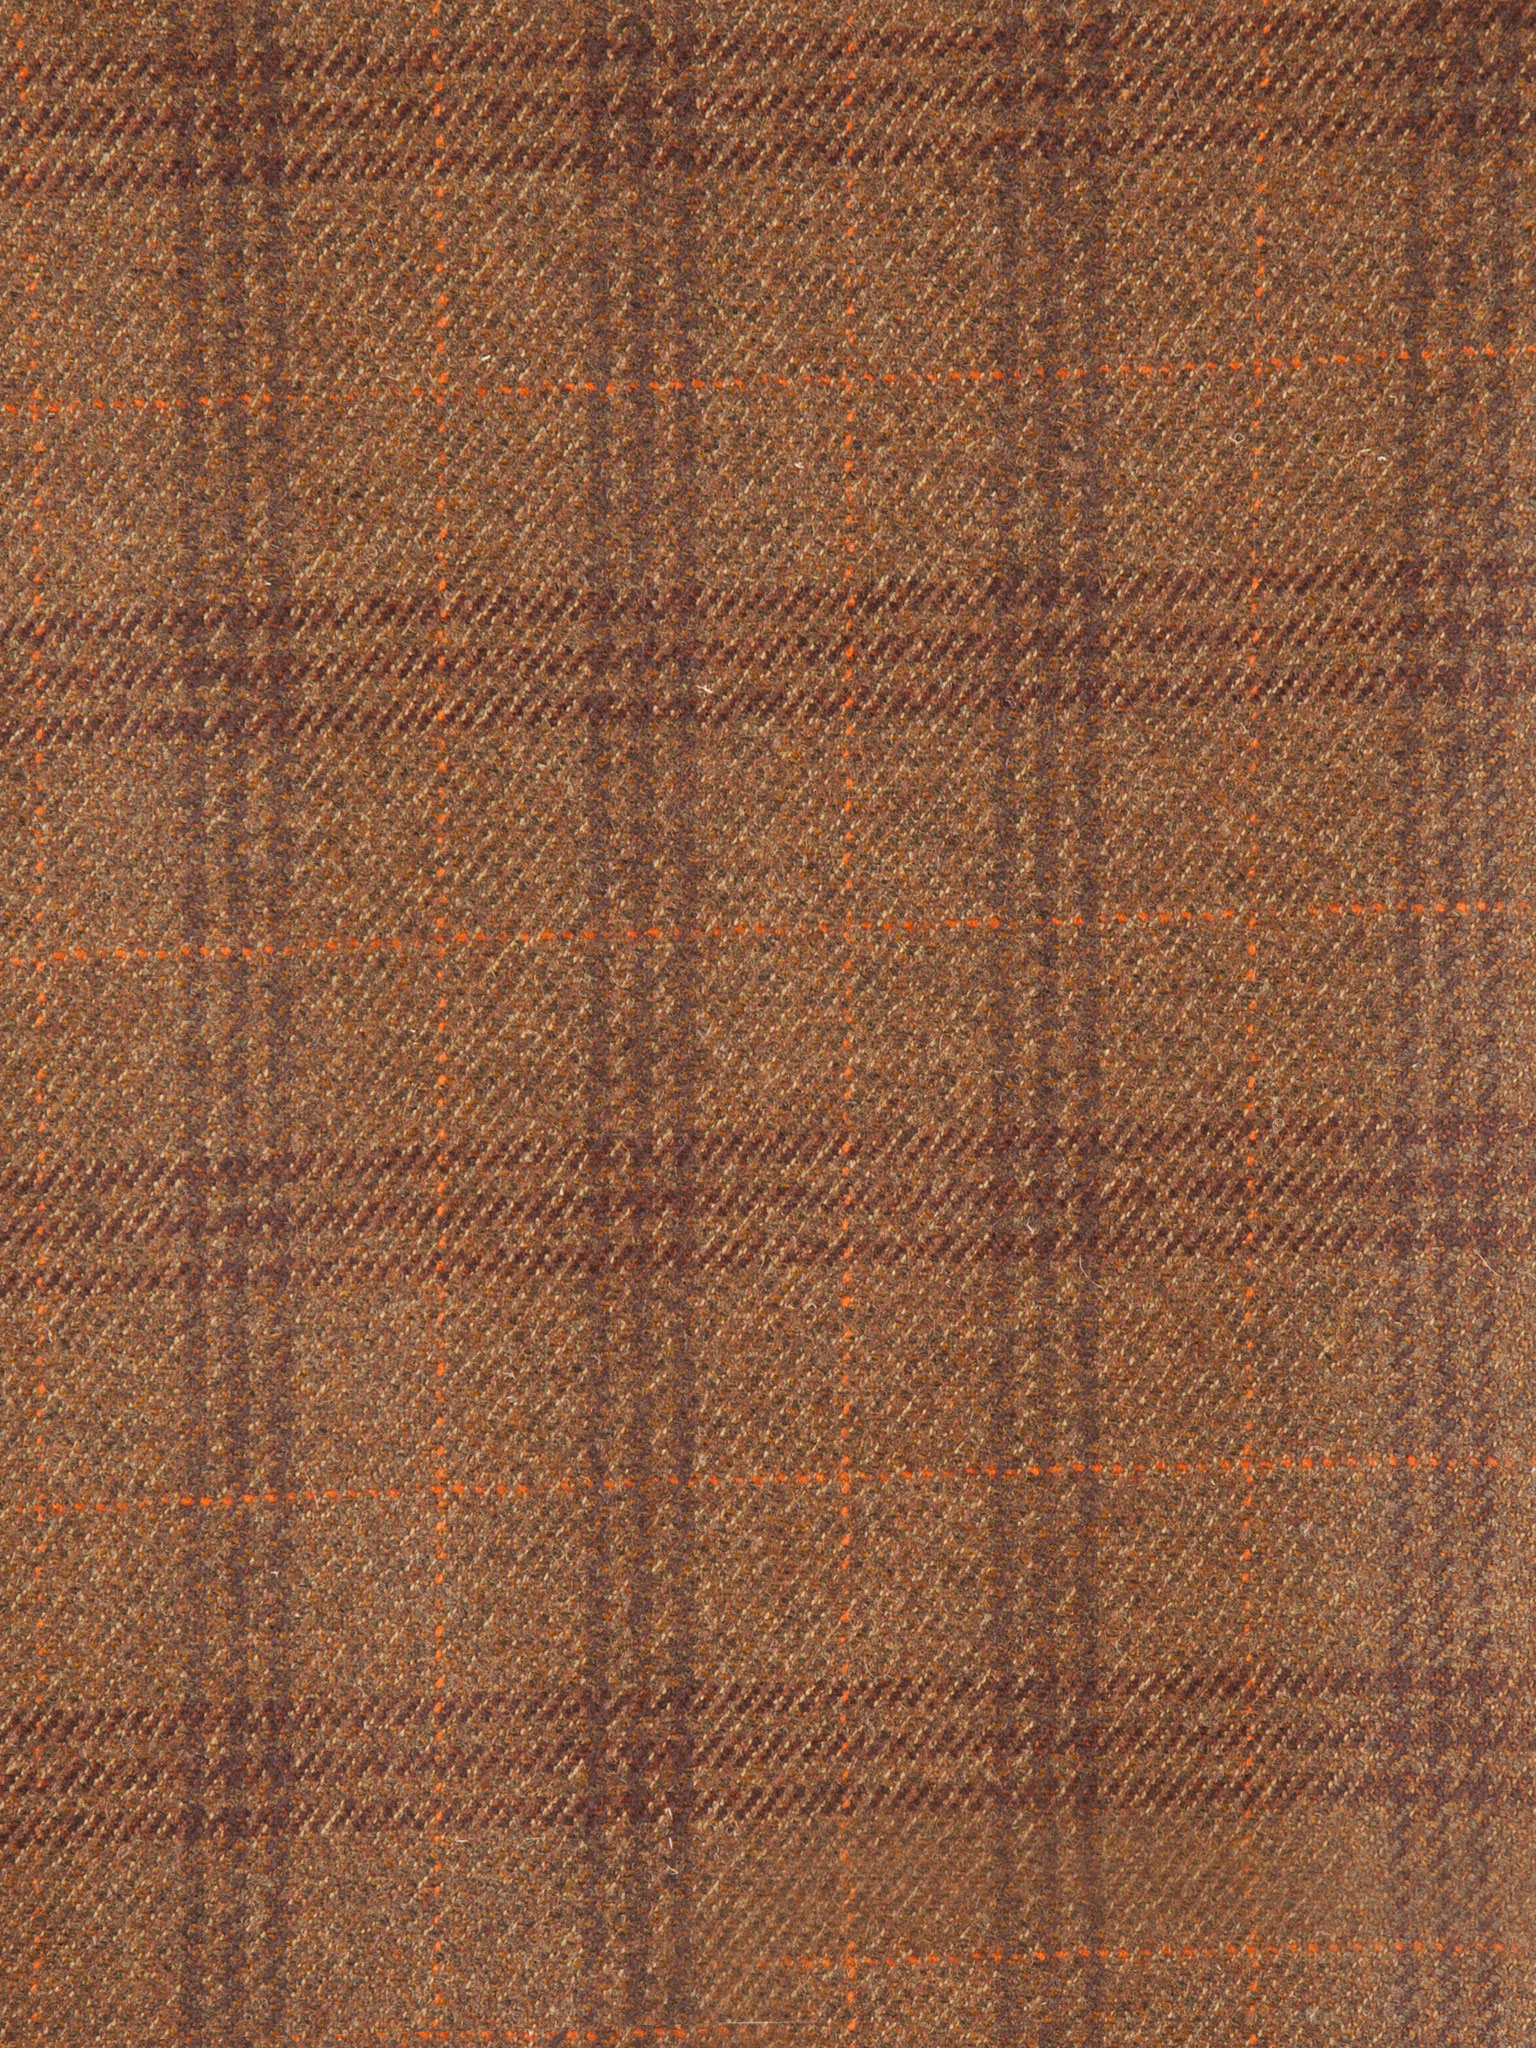 GAMEKEEPER TWEED 836001